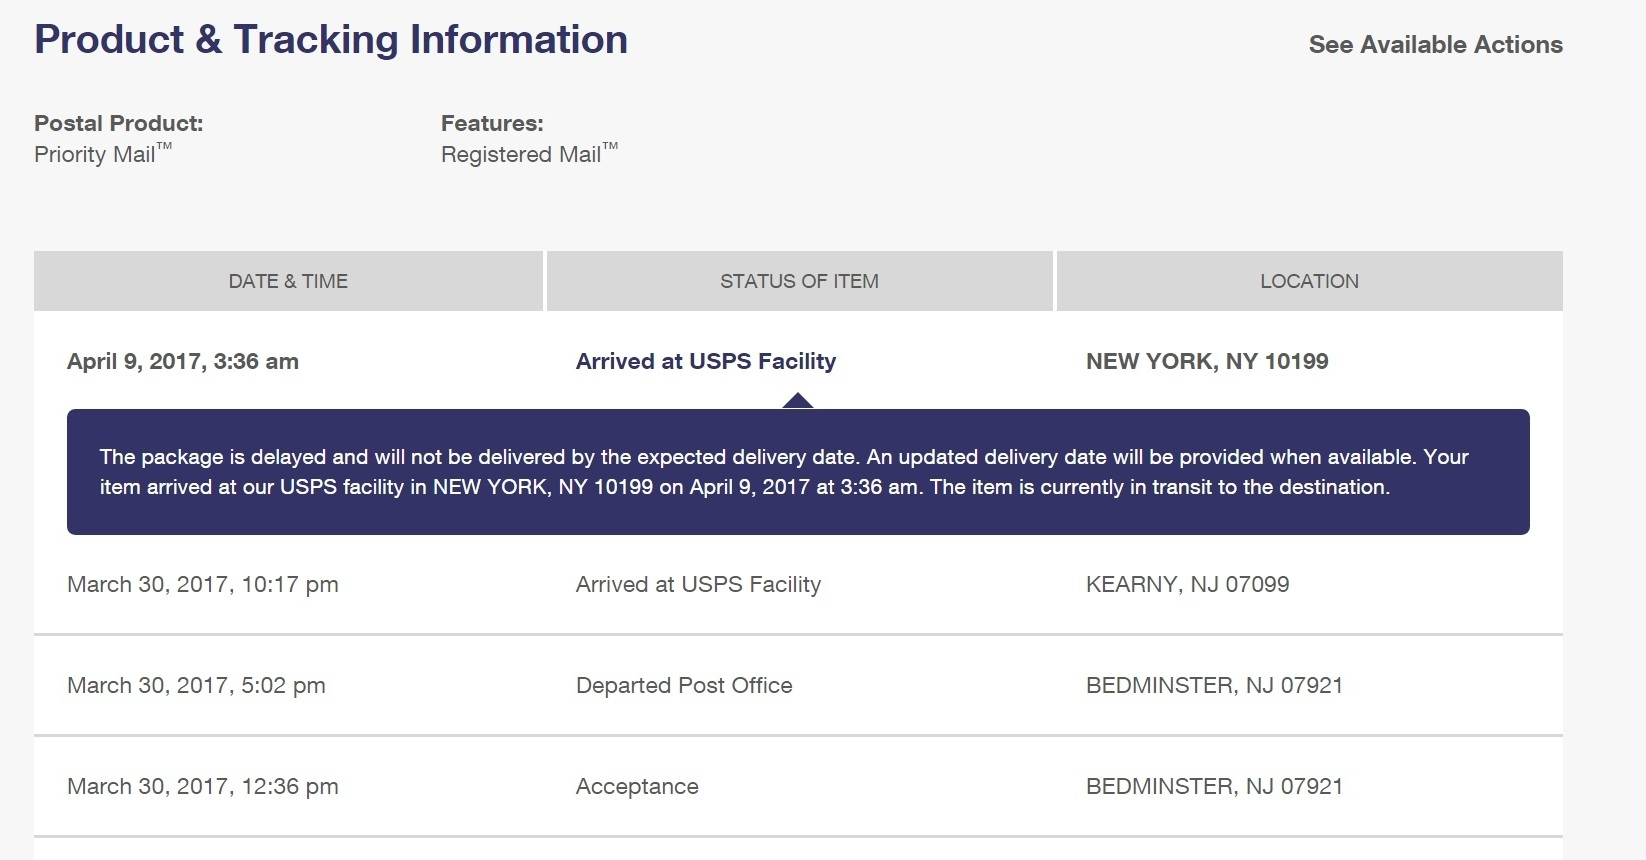 Danger, Danger, Los Angeles is a black hole at usps locations